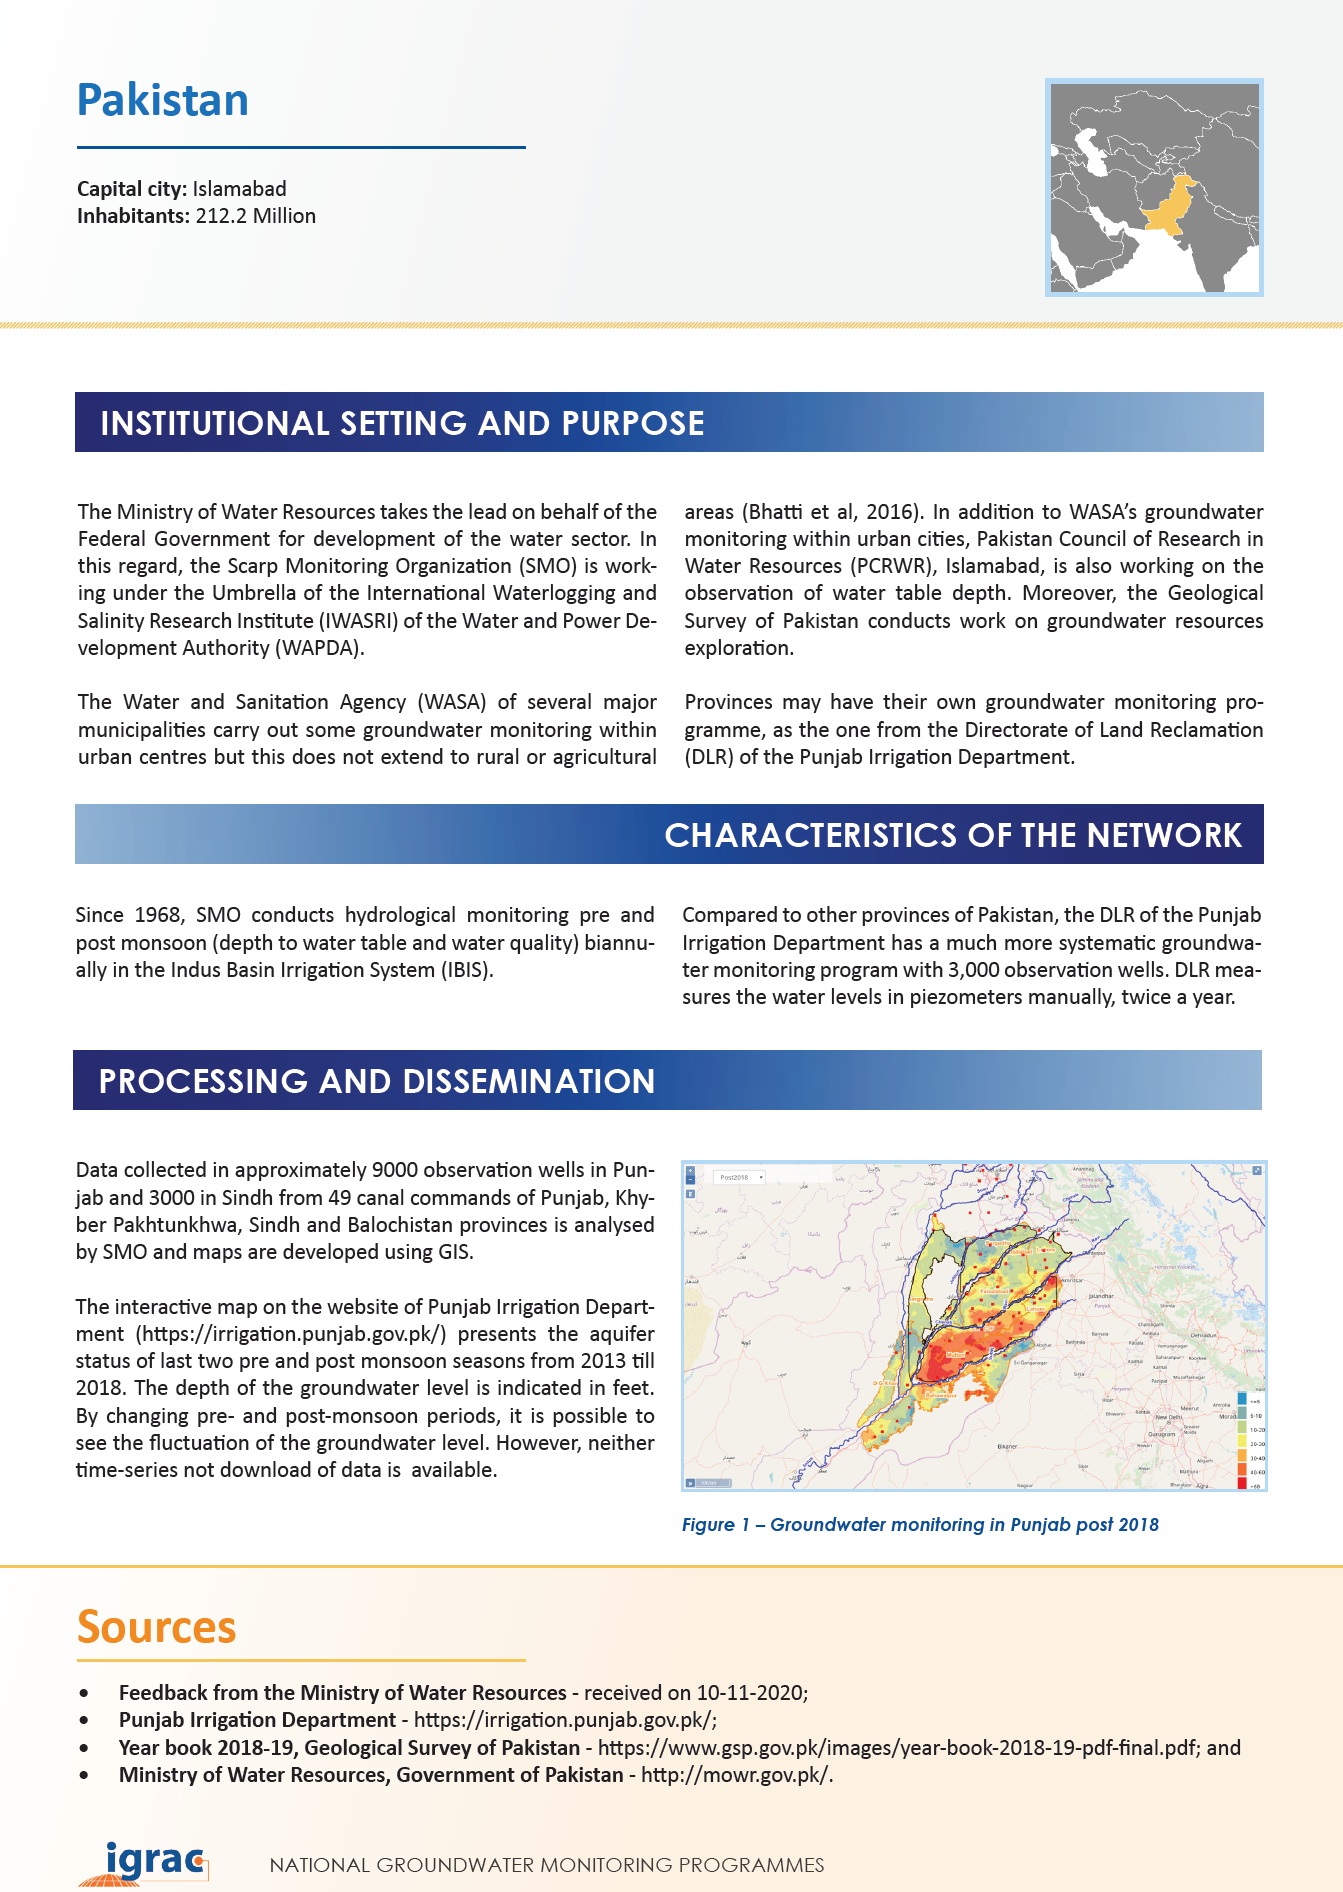 Groundwater monitoring country profile - Pakistan